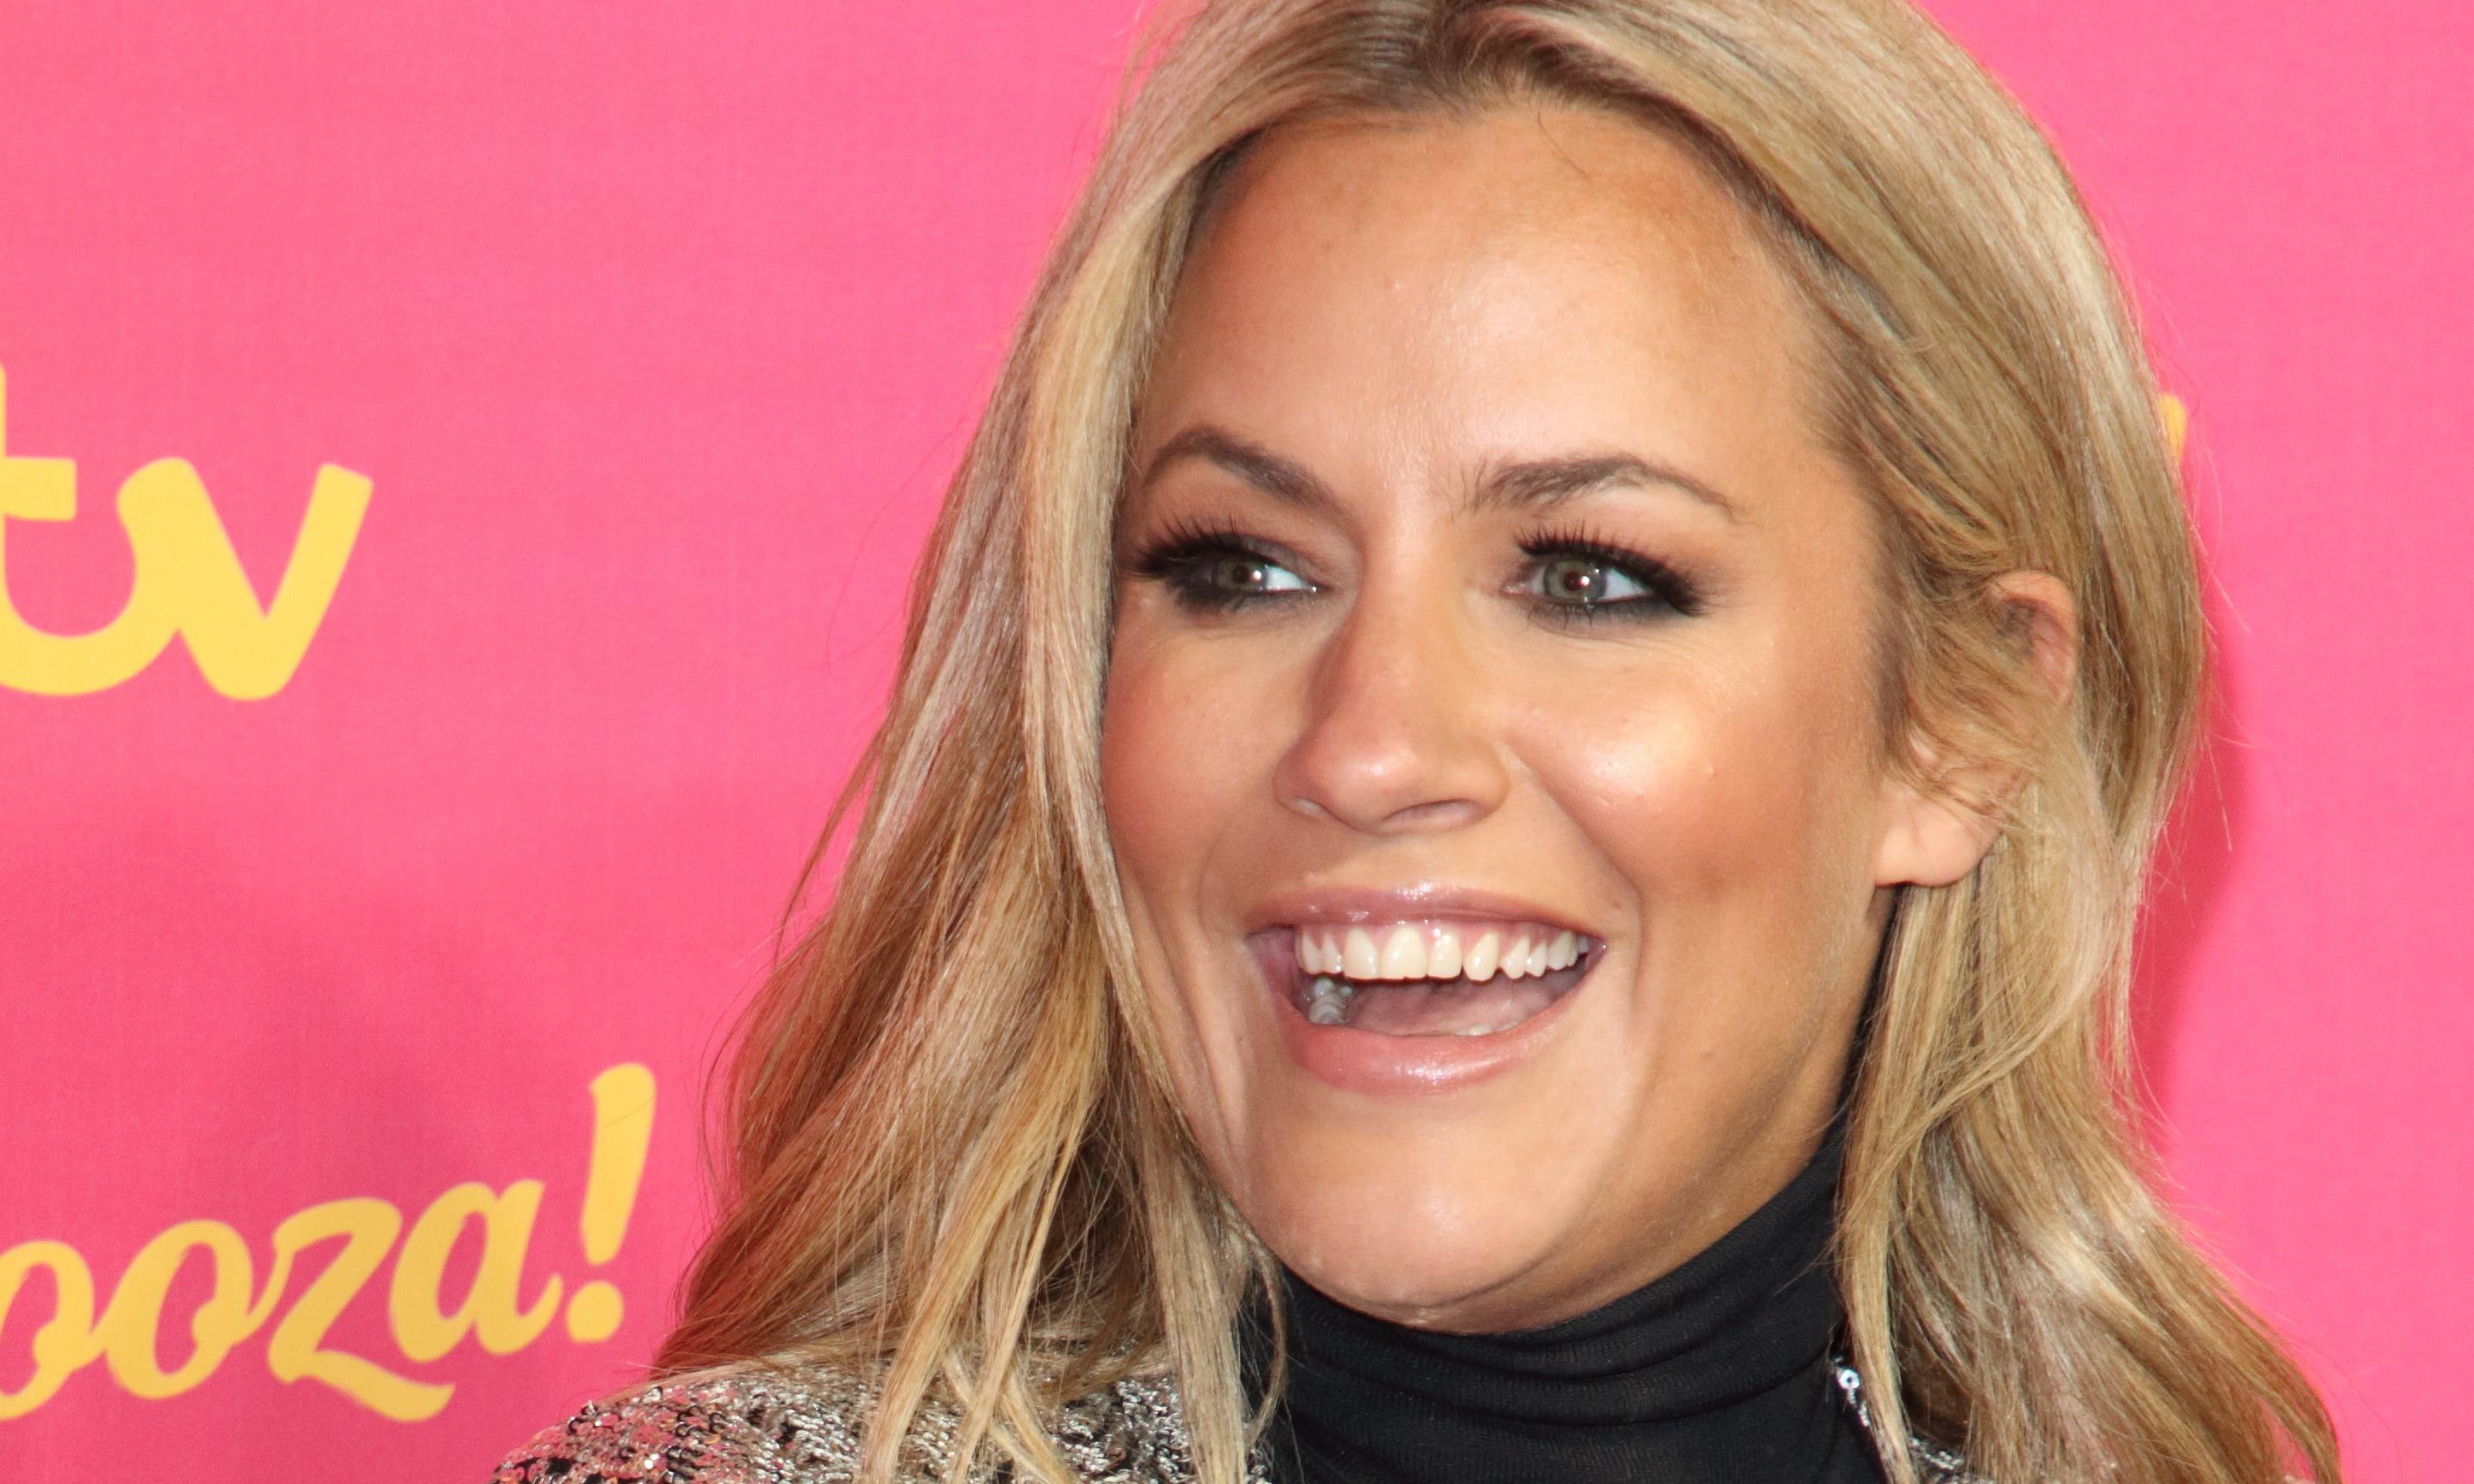 Caroline Flack: scale of negative media coverage before death revealed